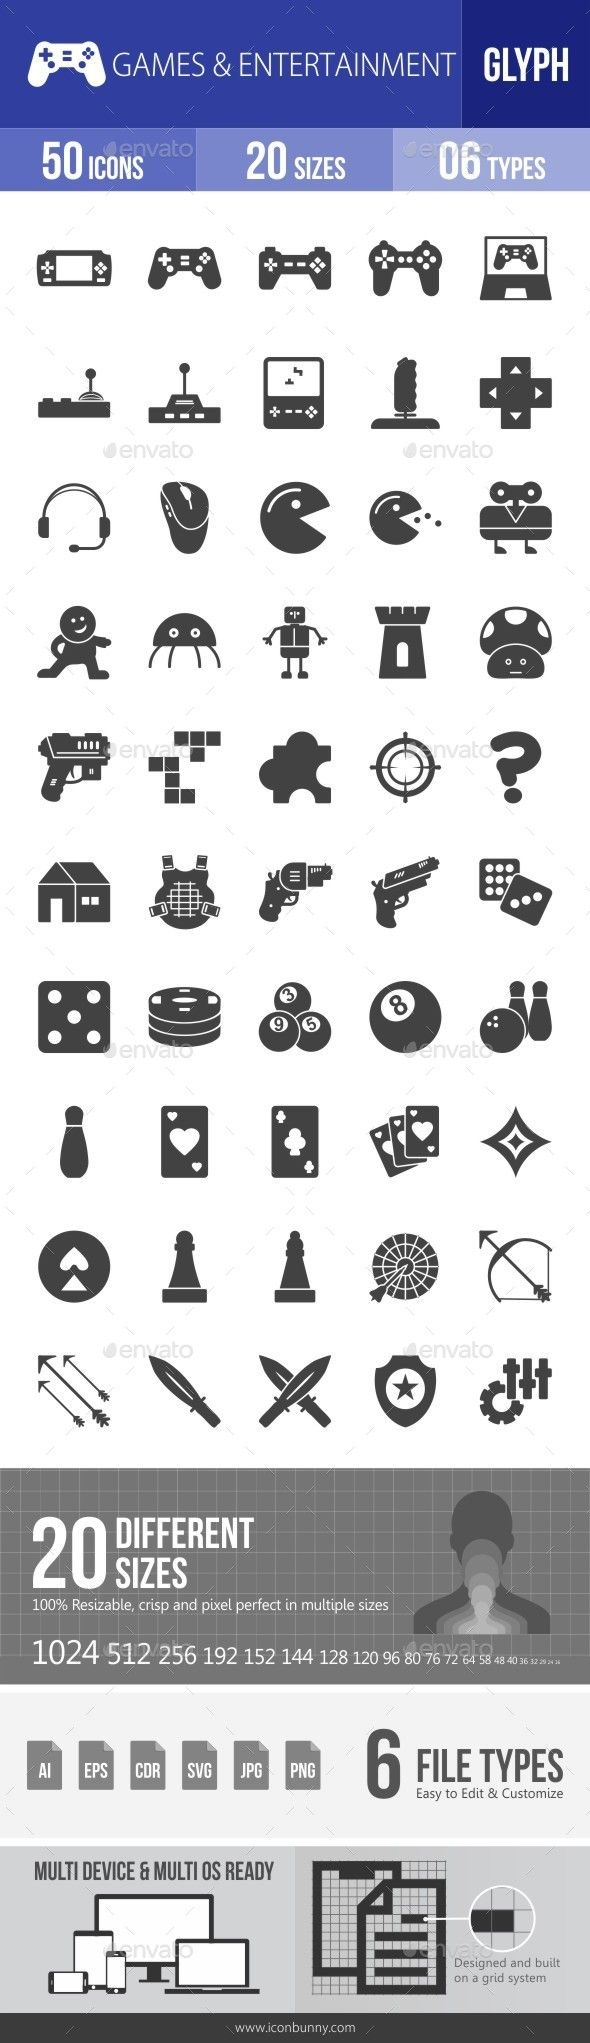 Games & Entertainment Glyph Icons